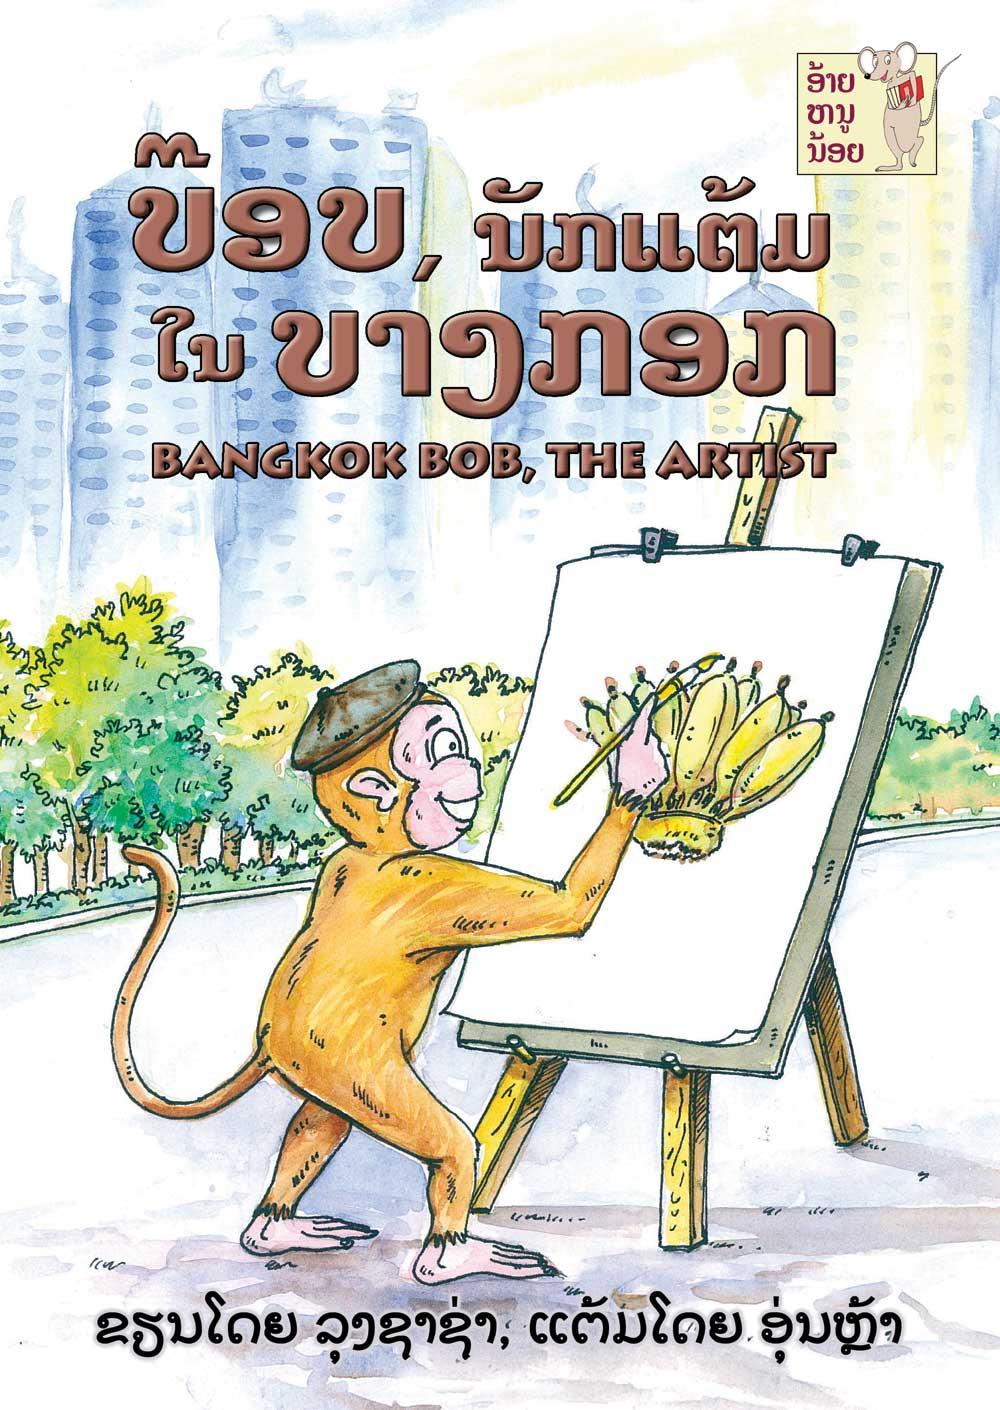 Bangkok Bob, the Artist large book cover, published in Lao language